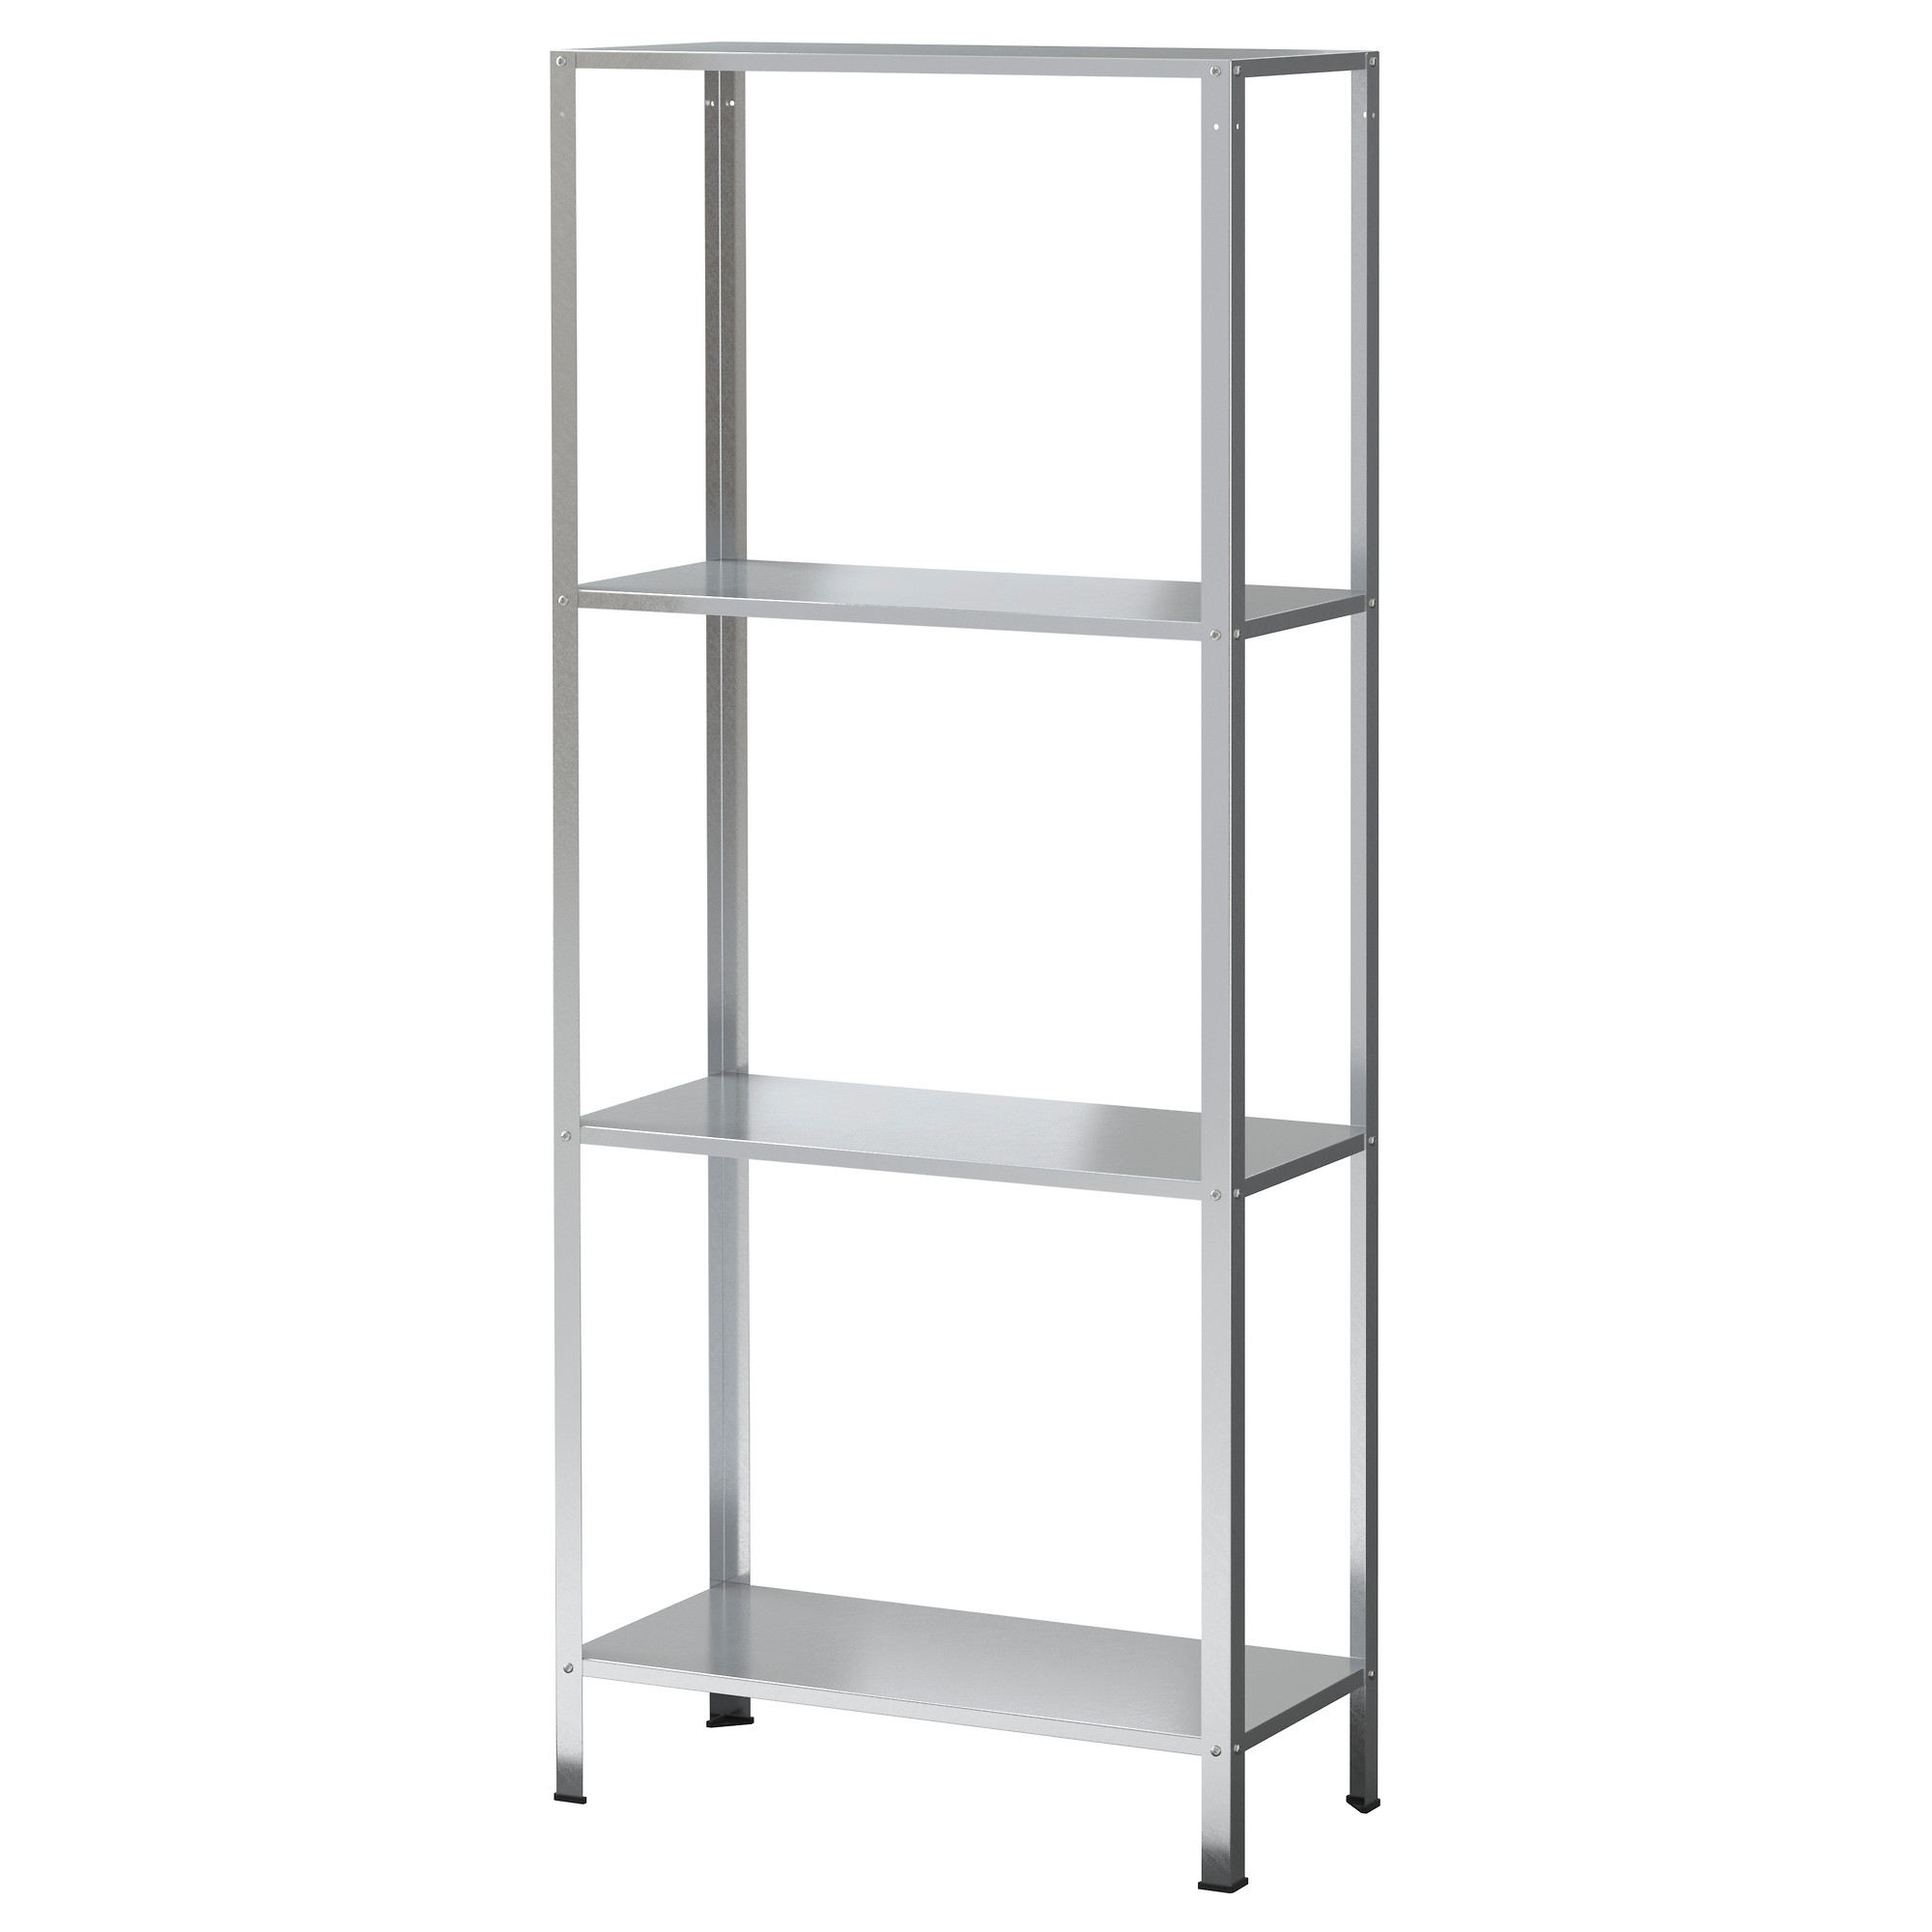 Ikea Hyllis Shelving Unit In Outdoo End 10 4 2020 12 36 Pm